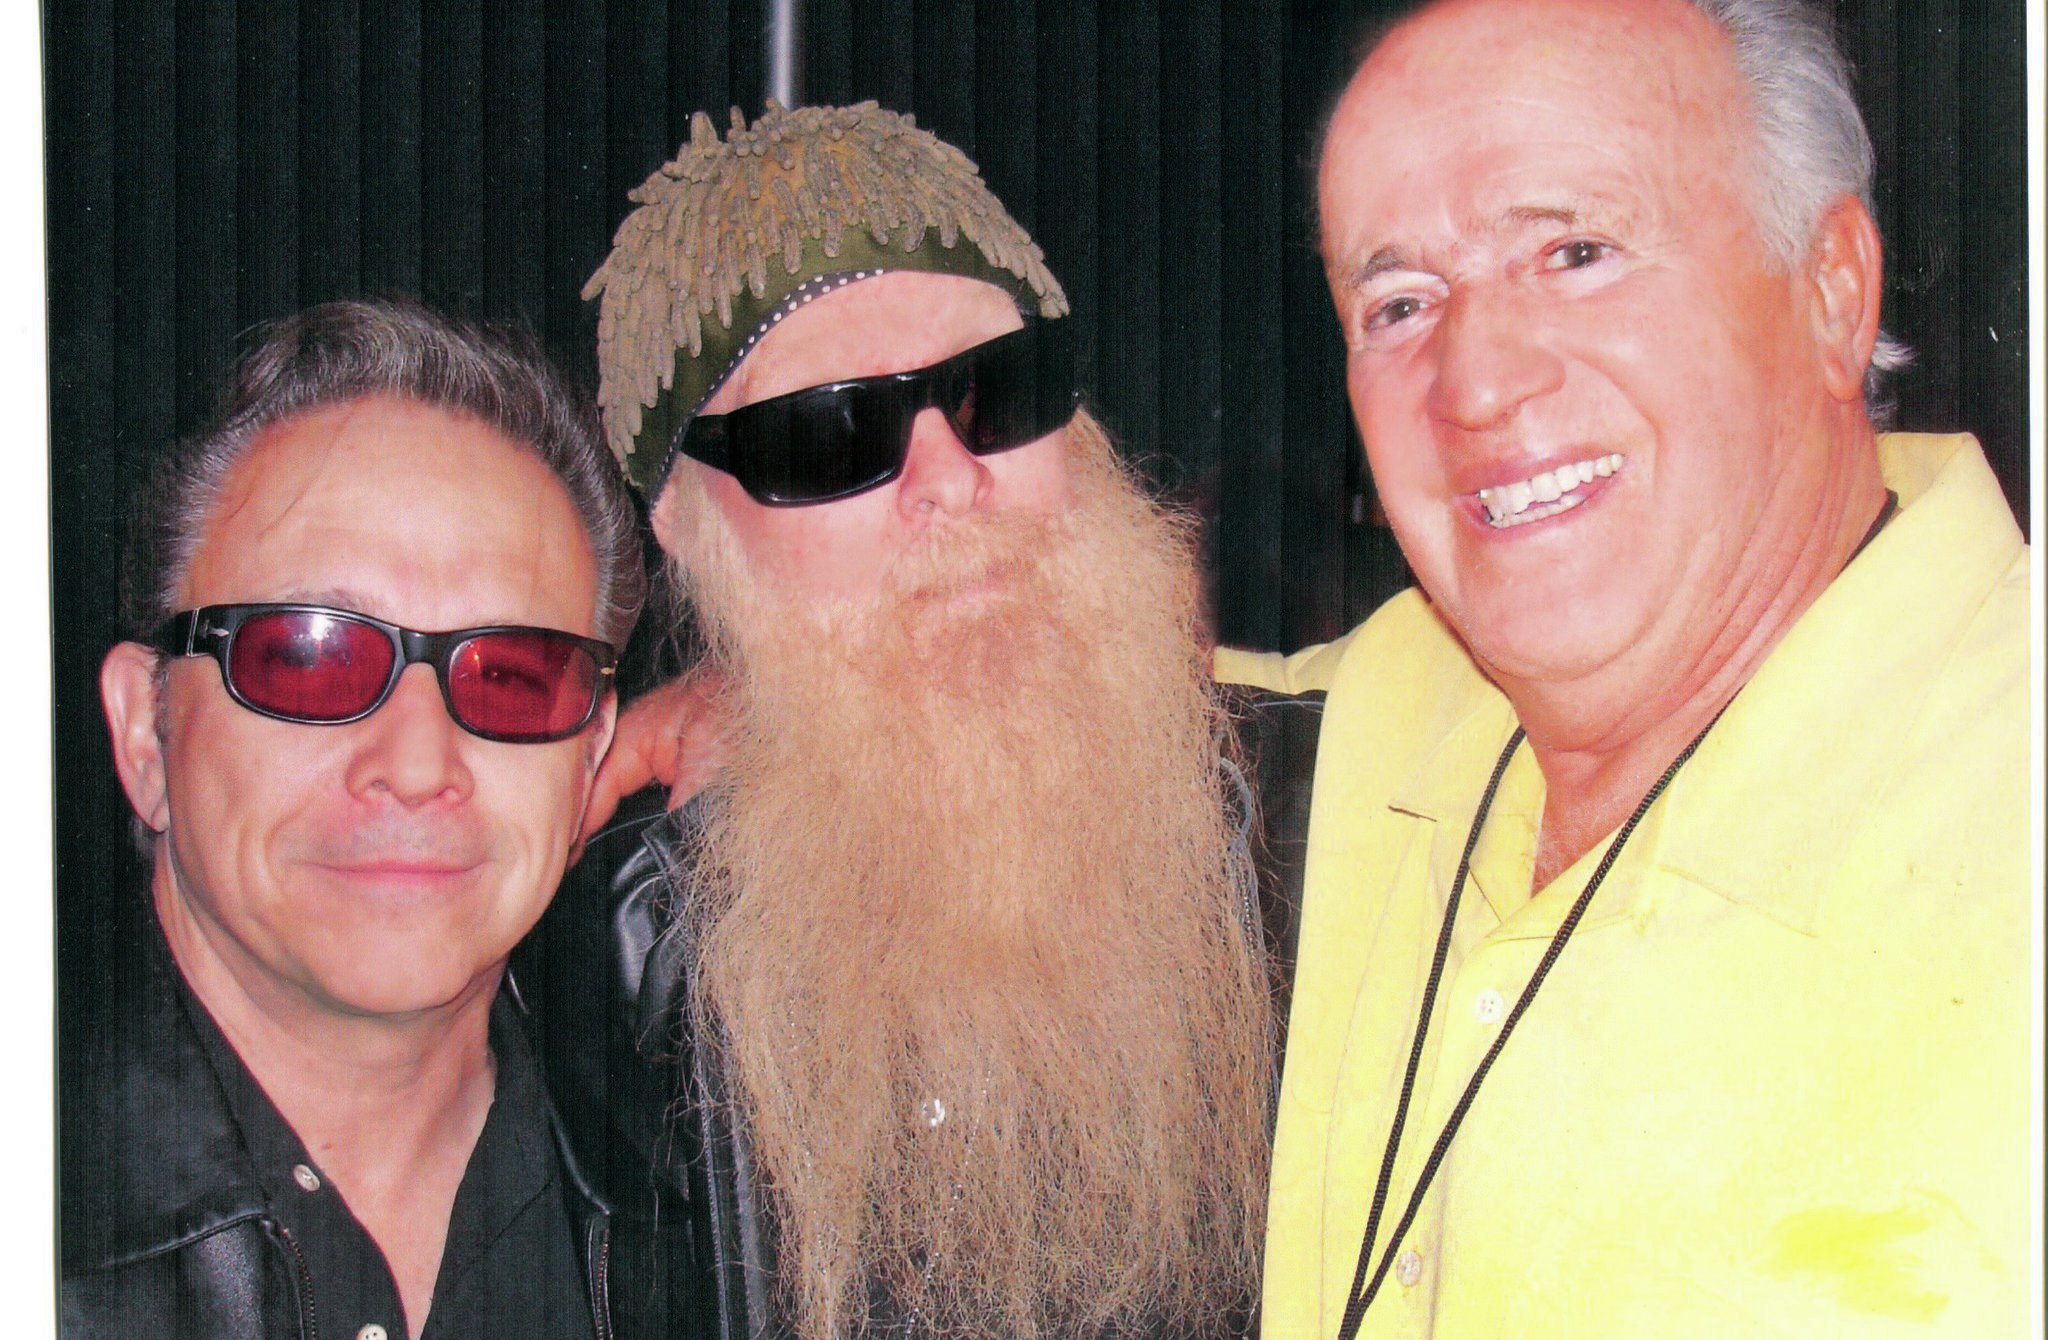 """Sue Brizio: """"When we went down to L.A. for the celebration of the 75th anniversary of the Deuce, we knew only that the Petersen Museum would provide entertainment. Had they advertised that Jimmie Vaughan left, Billy Gibbons center, Michael Anthony, and Jeff Beck would be playing together, they would've needed the L.A. Coliseum!"""""""